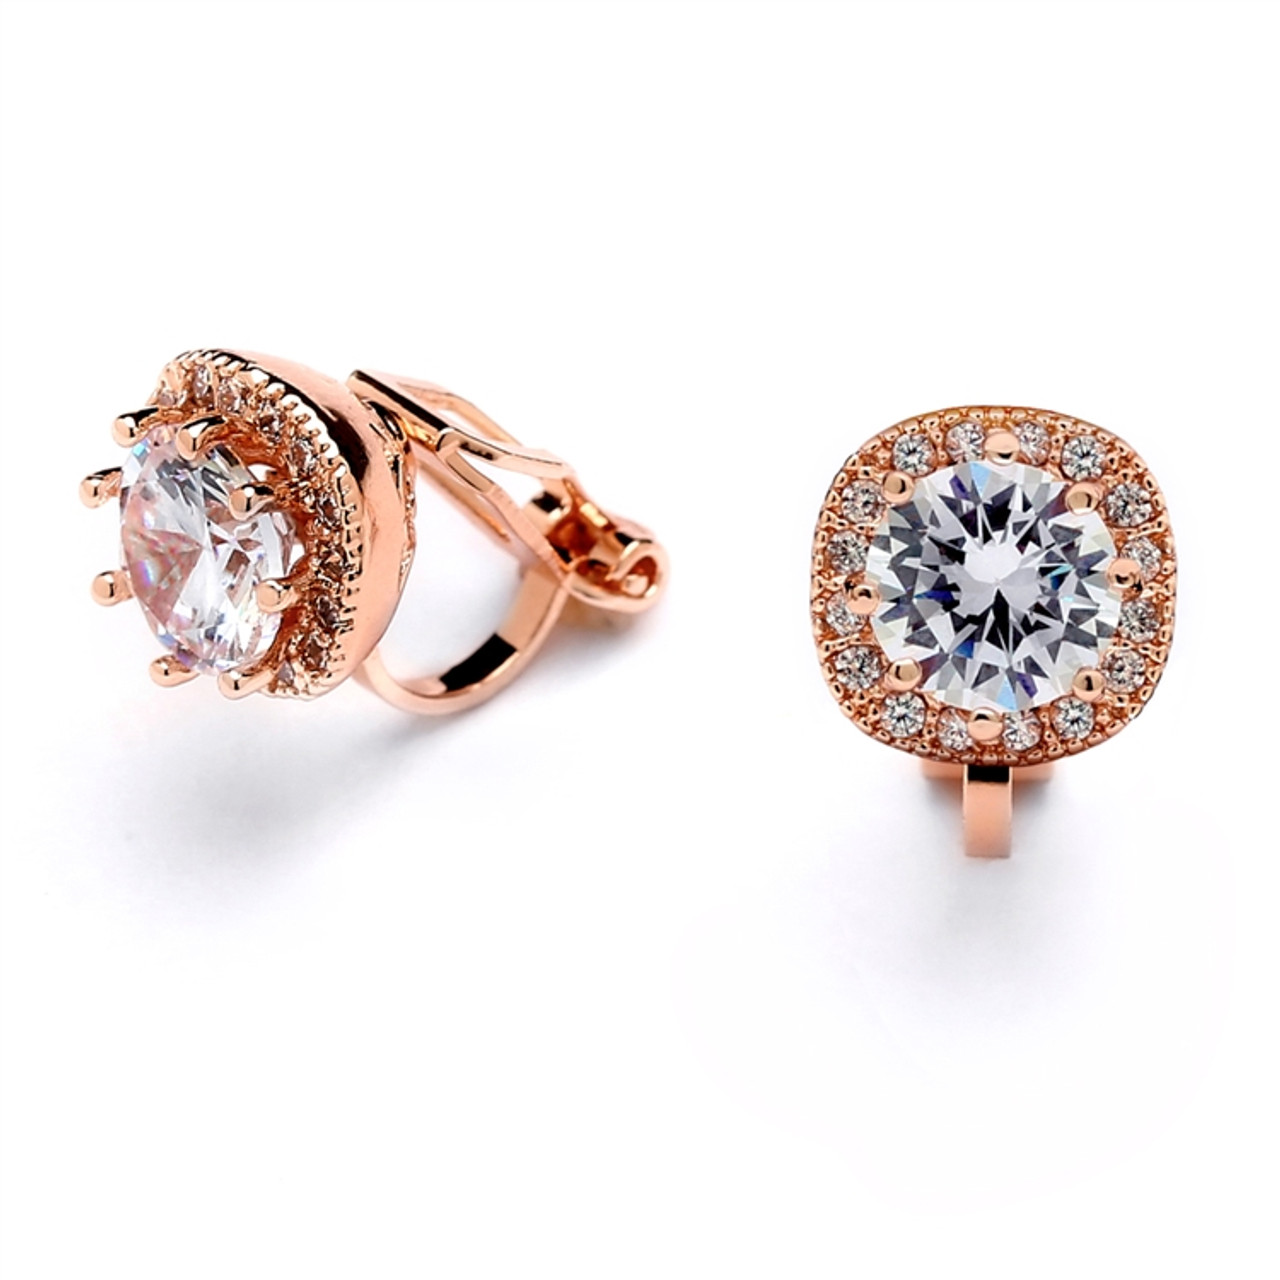 Wedding Earrings Solitaire Crystal Clip On Earrings Gold or Rose Gold Silver CZ Solitaire Bridal Jewellery Bridal Accessories